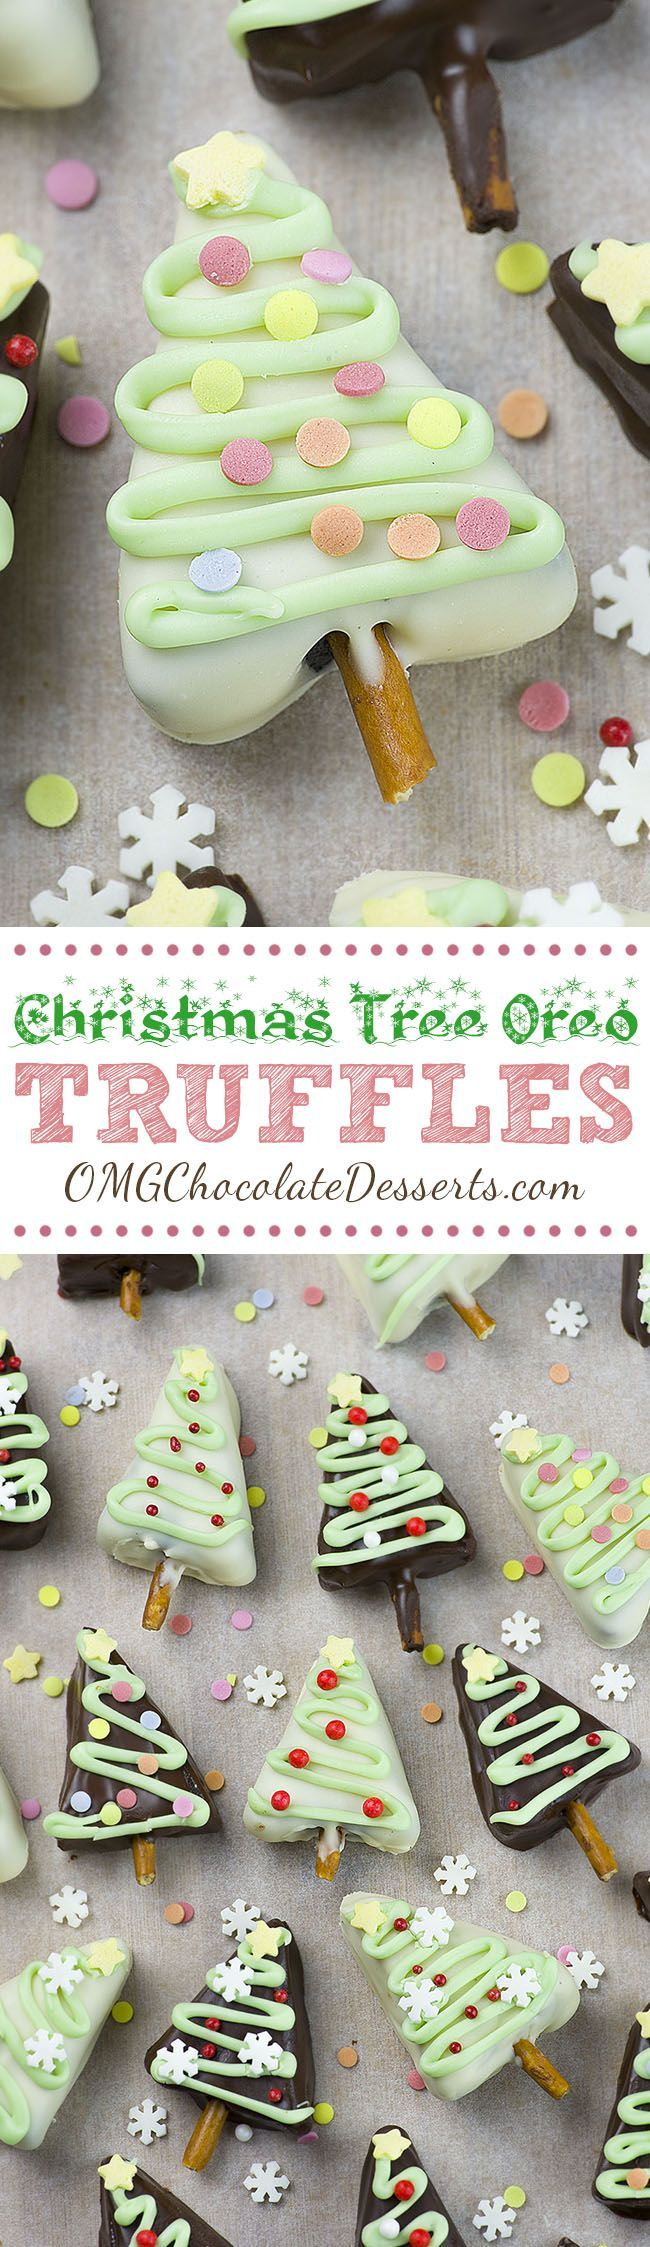 Christmas Tree Oreo Truffles are easy and fun holiday dessert recipe! Your favorite, three ingredients, Cream Cheese Oreo Truffles get festive makeover!!!